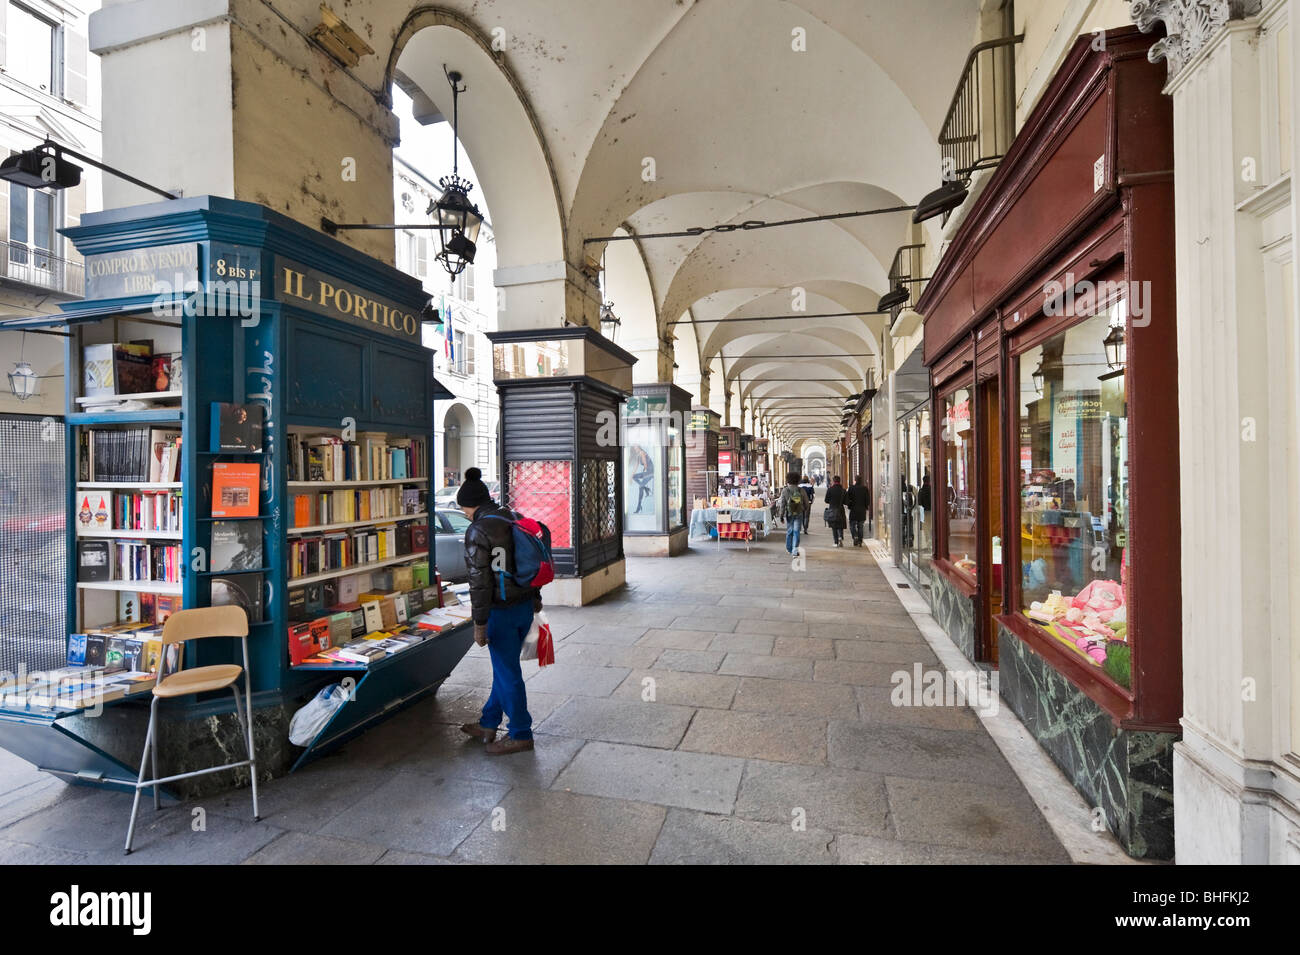 Secondhand book stall and shops in a portico along the Via Po in the historic centre, Turin, Piemonte, Italy - Stock Image